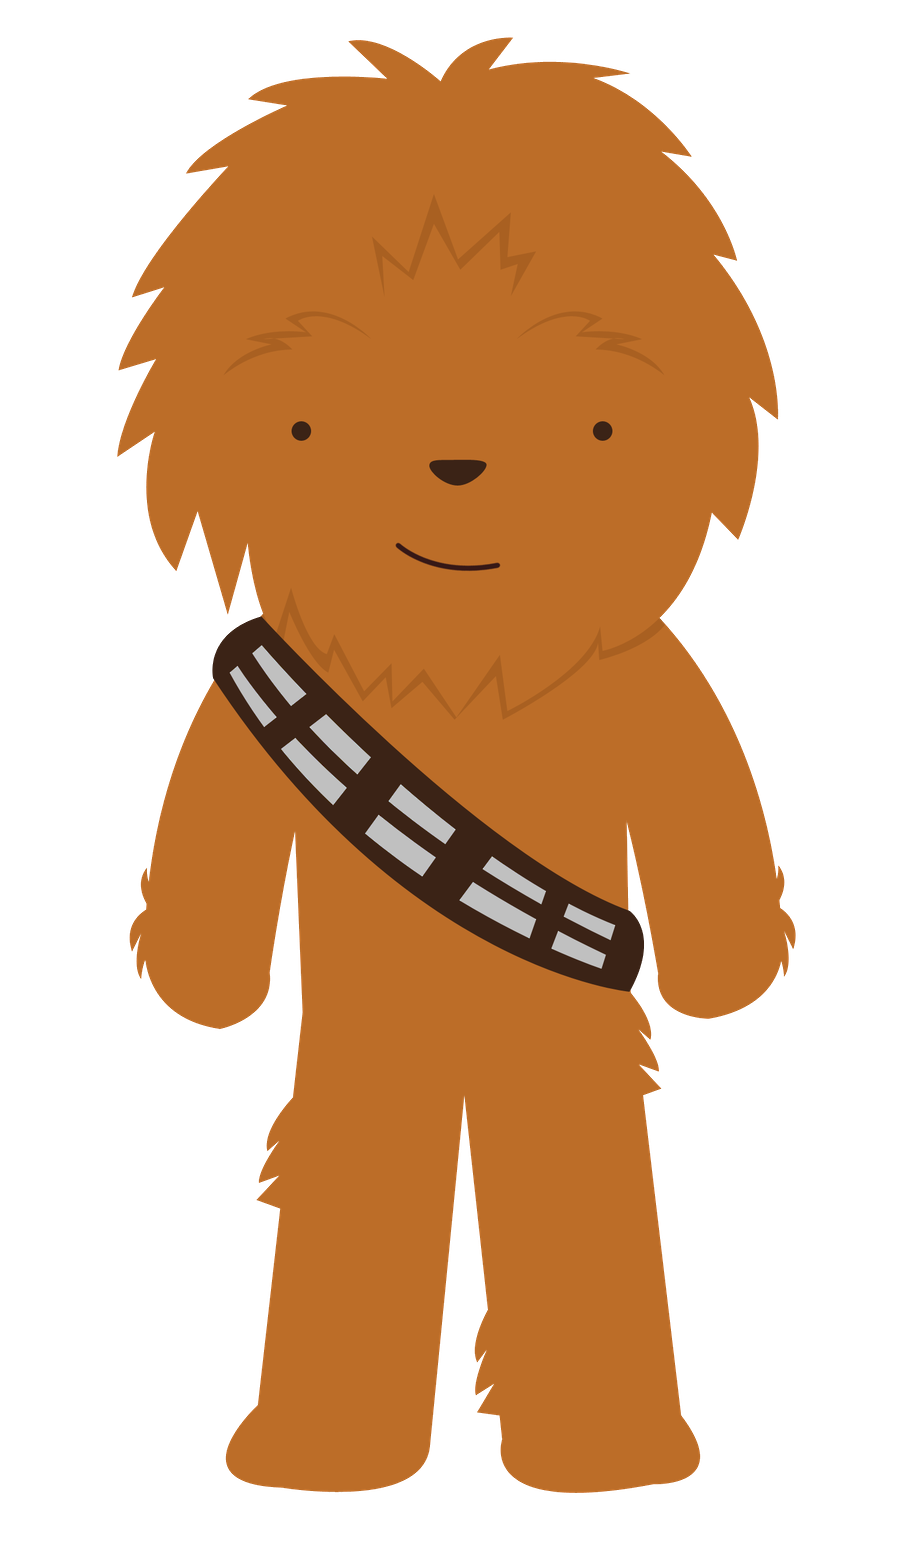 Star wars minus pinteres. Starwars clipart cute